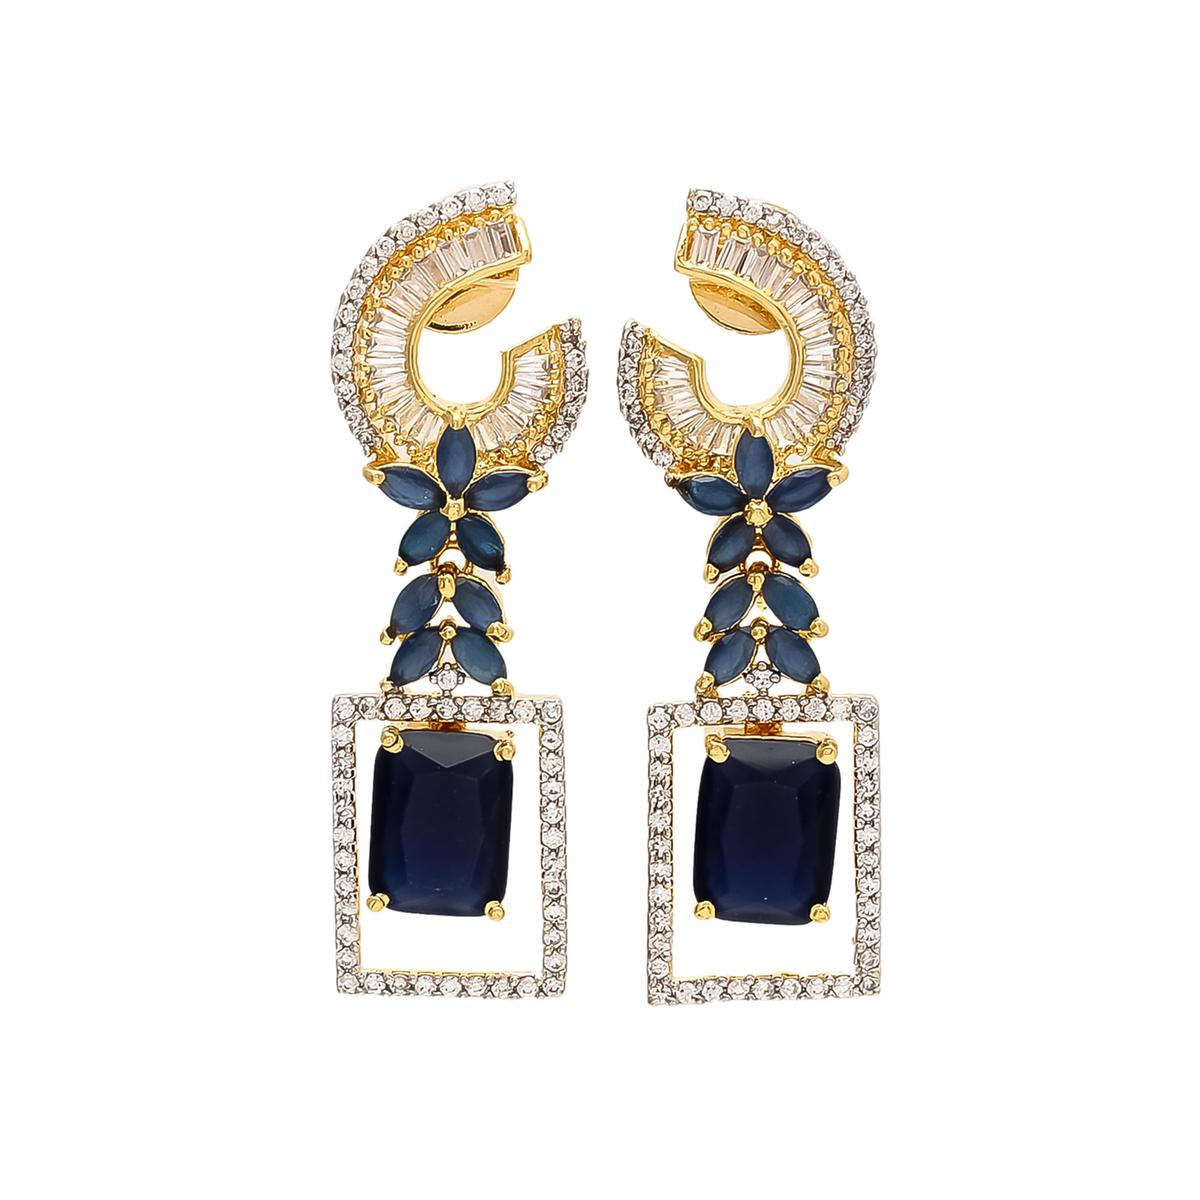 Classy Blue and White Colored Stone Earrings